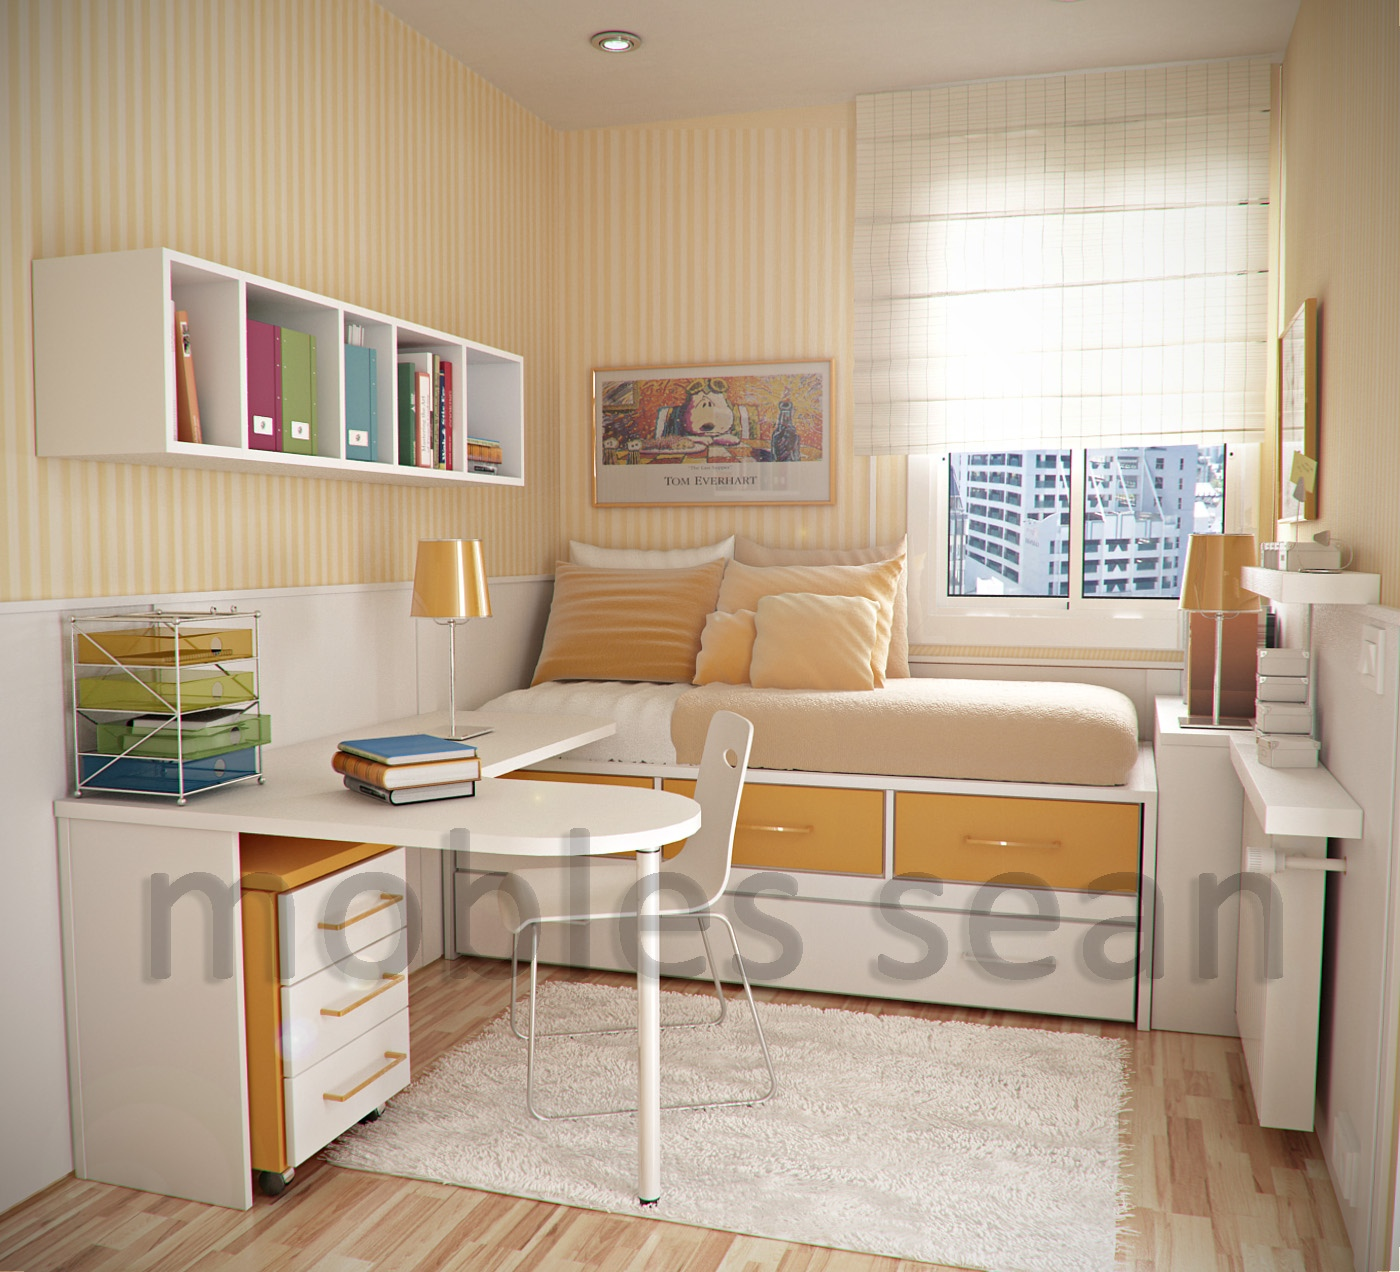 Design Ideas For Small Apartments emejing furniture for small apartment pictures home iterior design consulticus Space Saving Designs For Small Kids Rooms